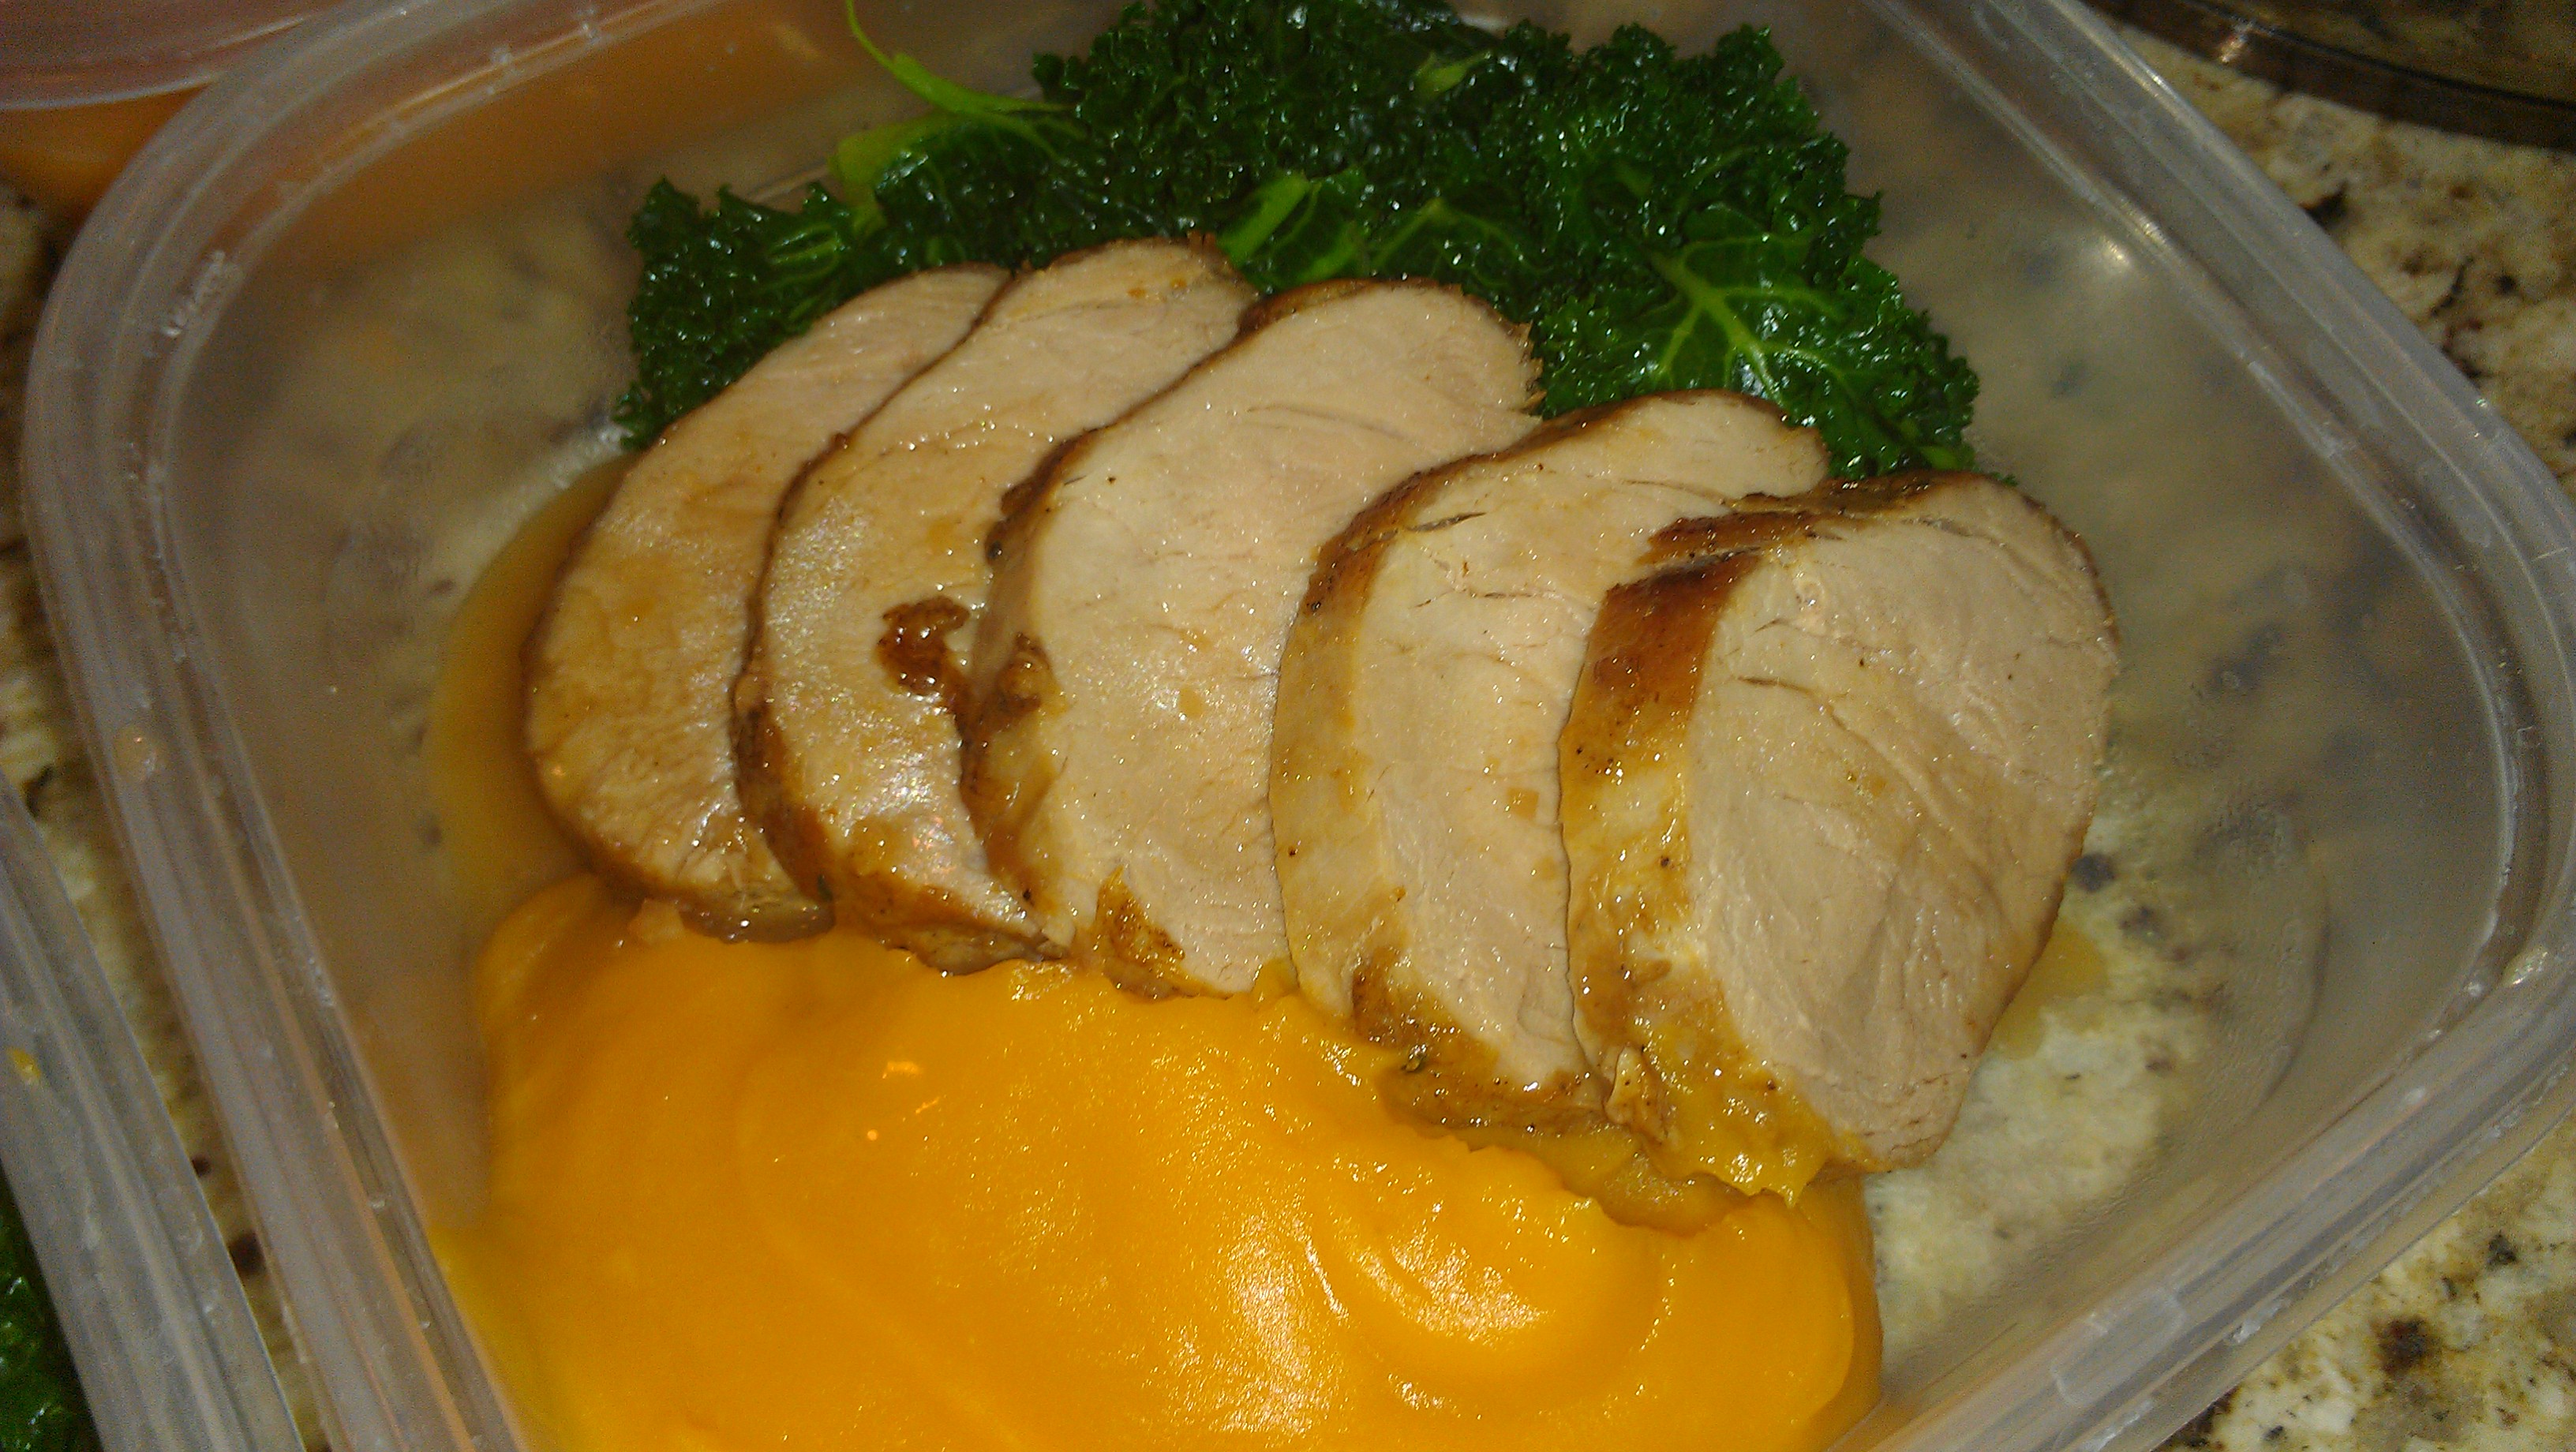 Honey glazed pork tenderloin with pureed sweet potatoes pic